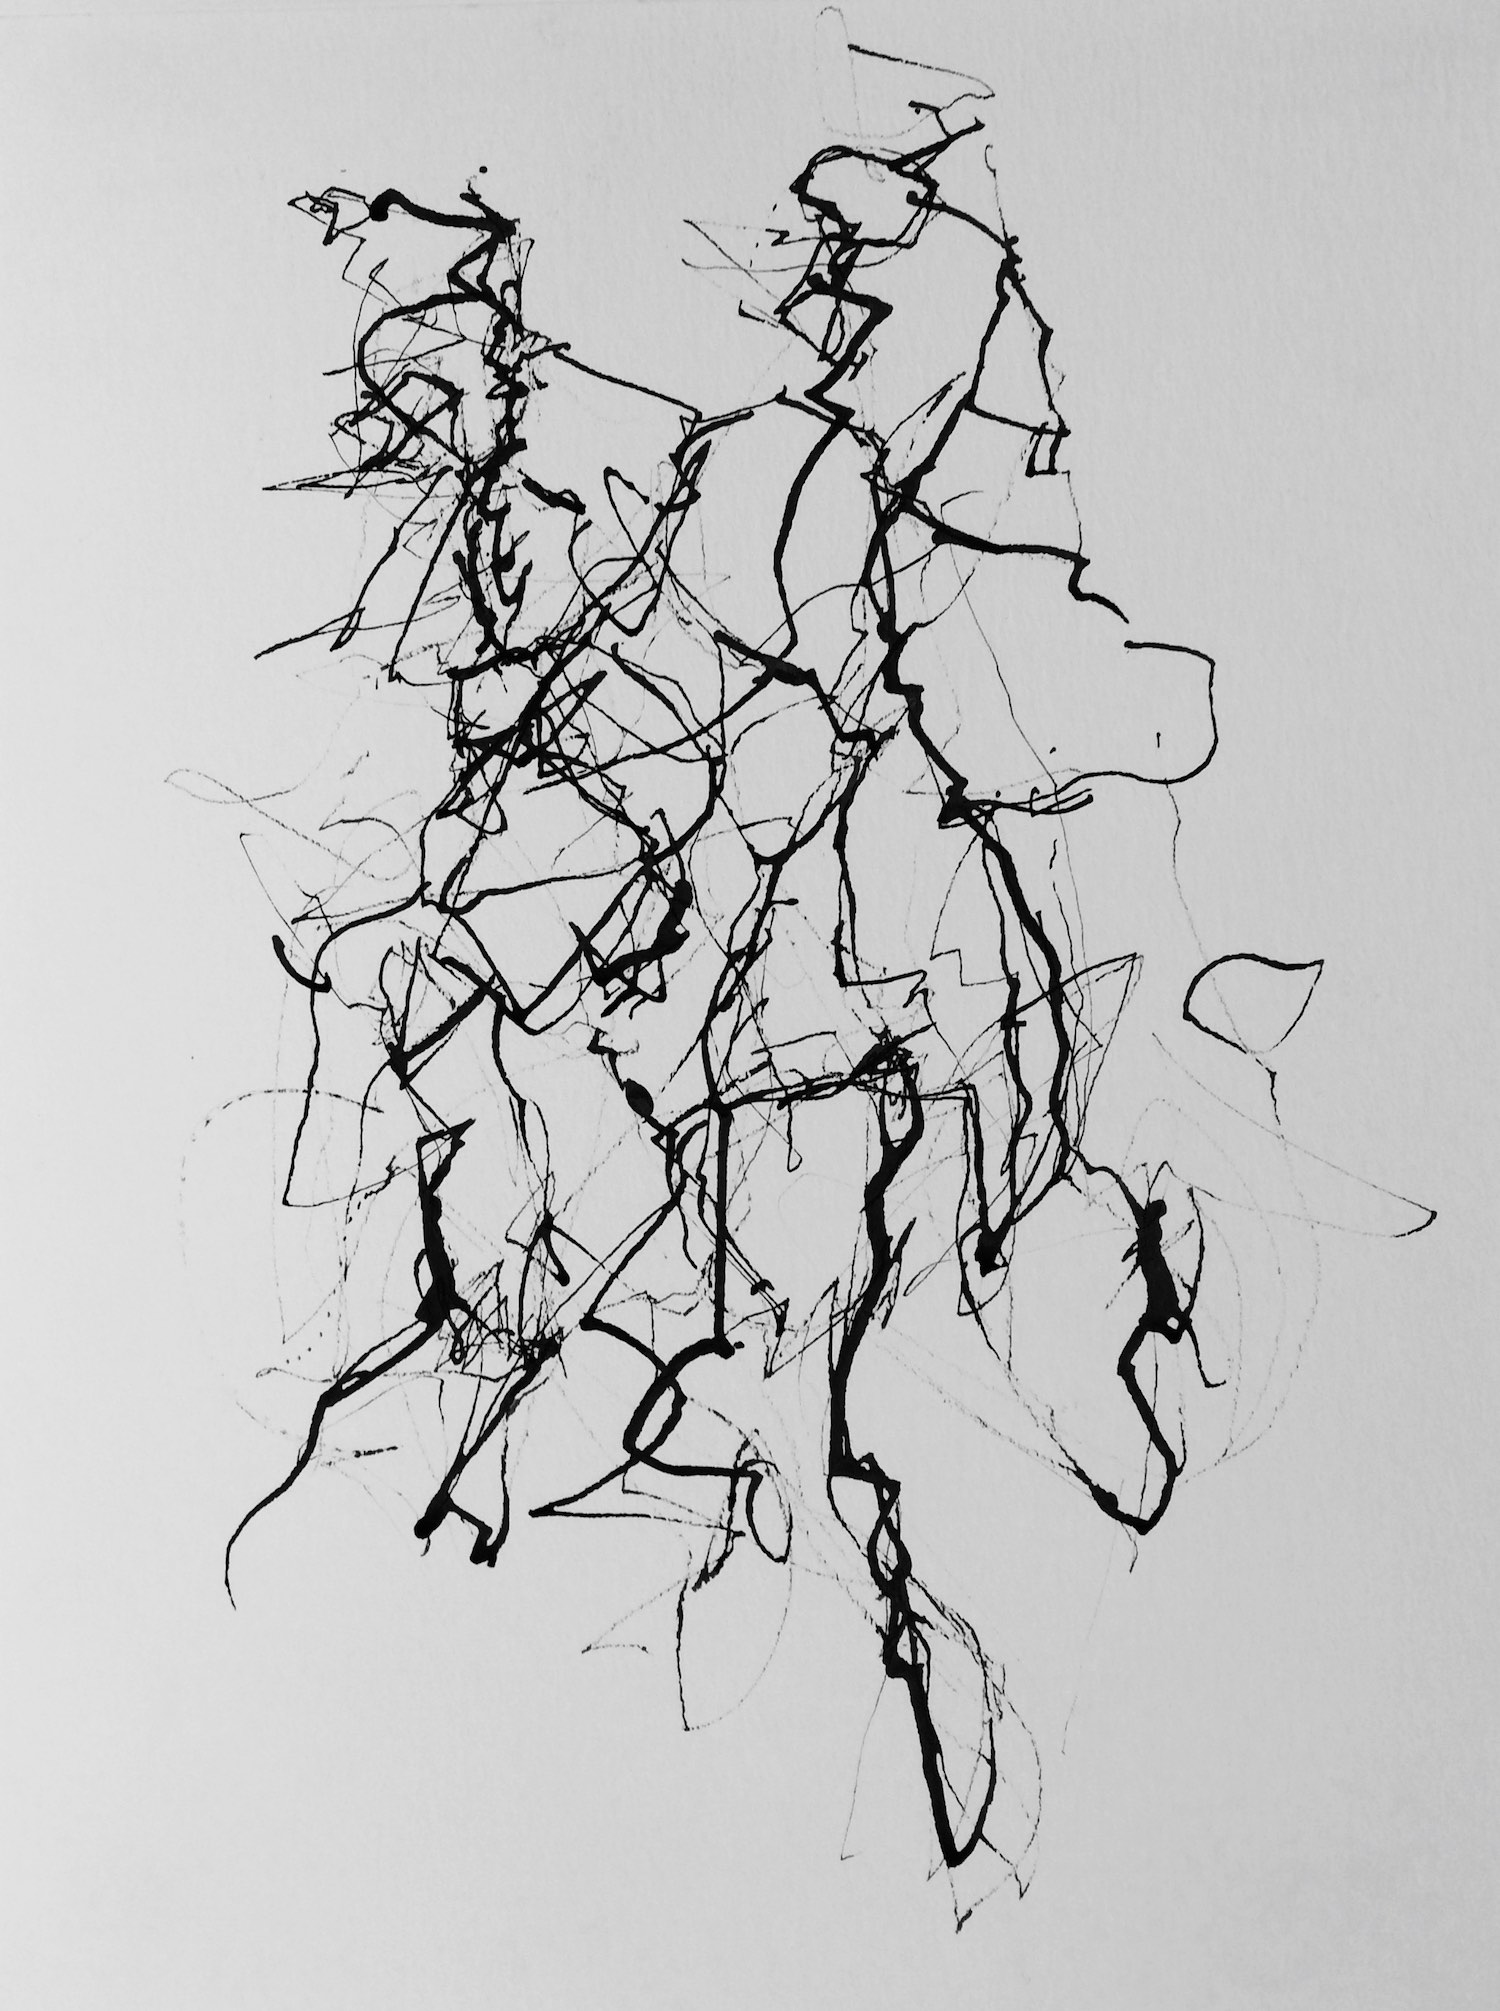 Moving Forms (7/12)    505x380mm (19.9x14.9in)  Ink on paper